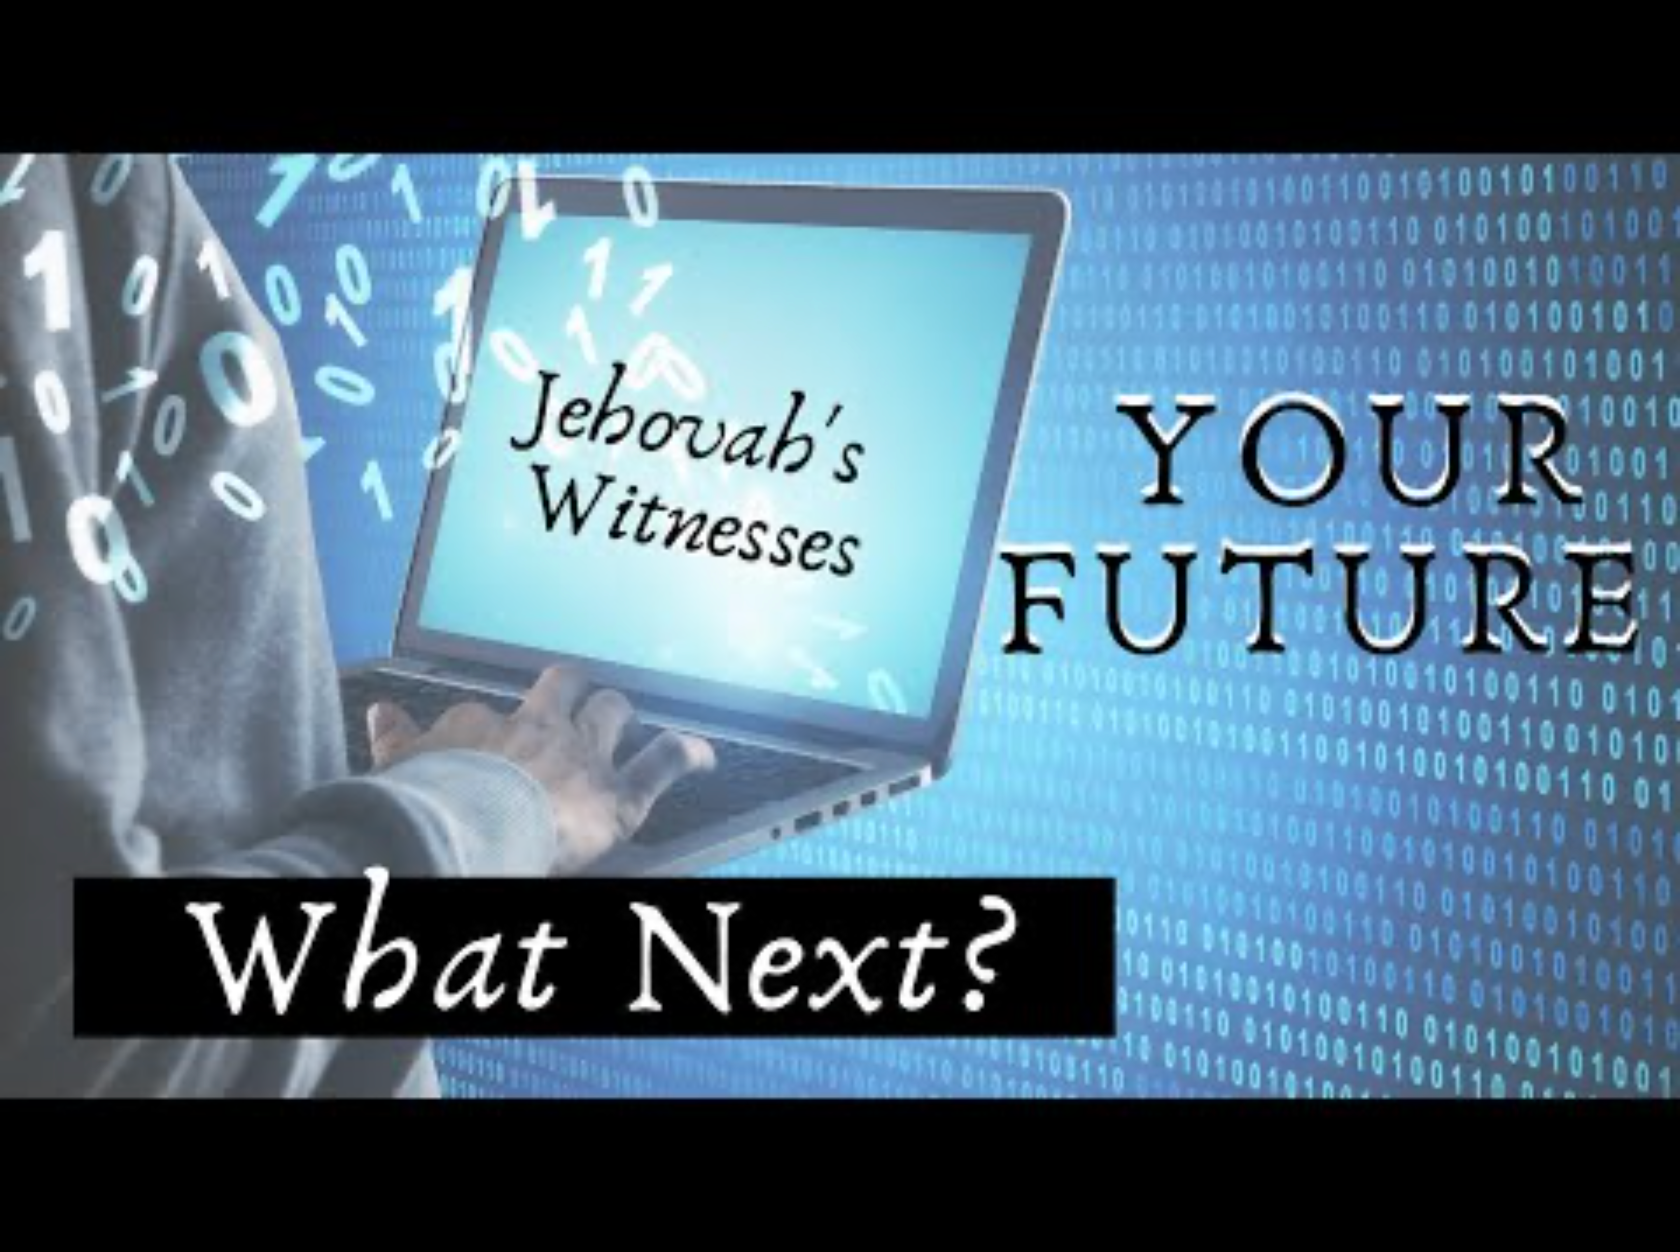 Your Future What Next